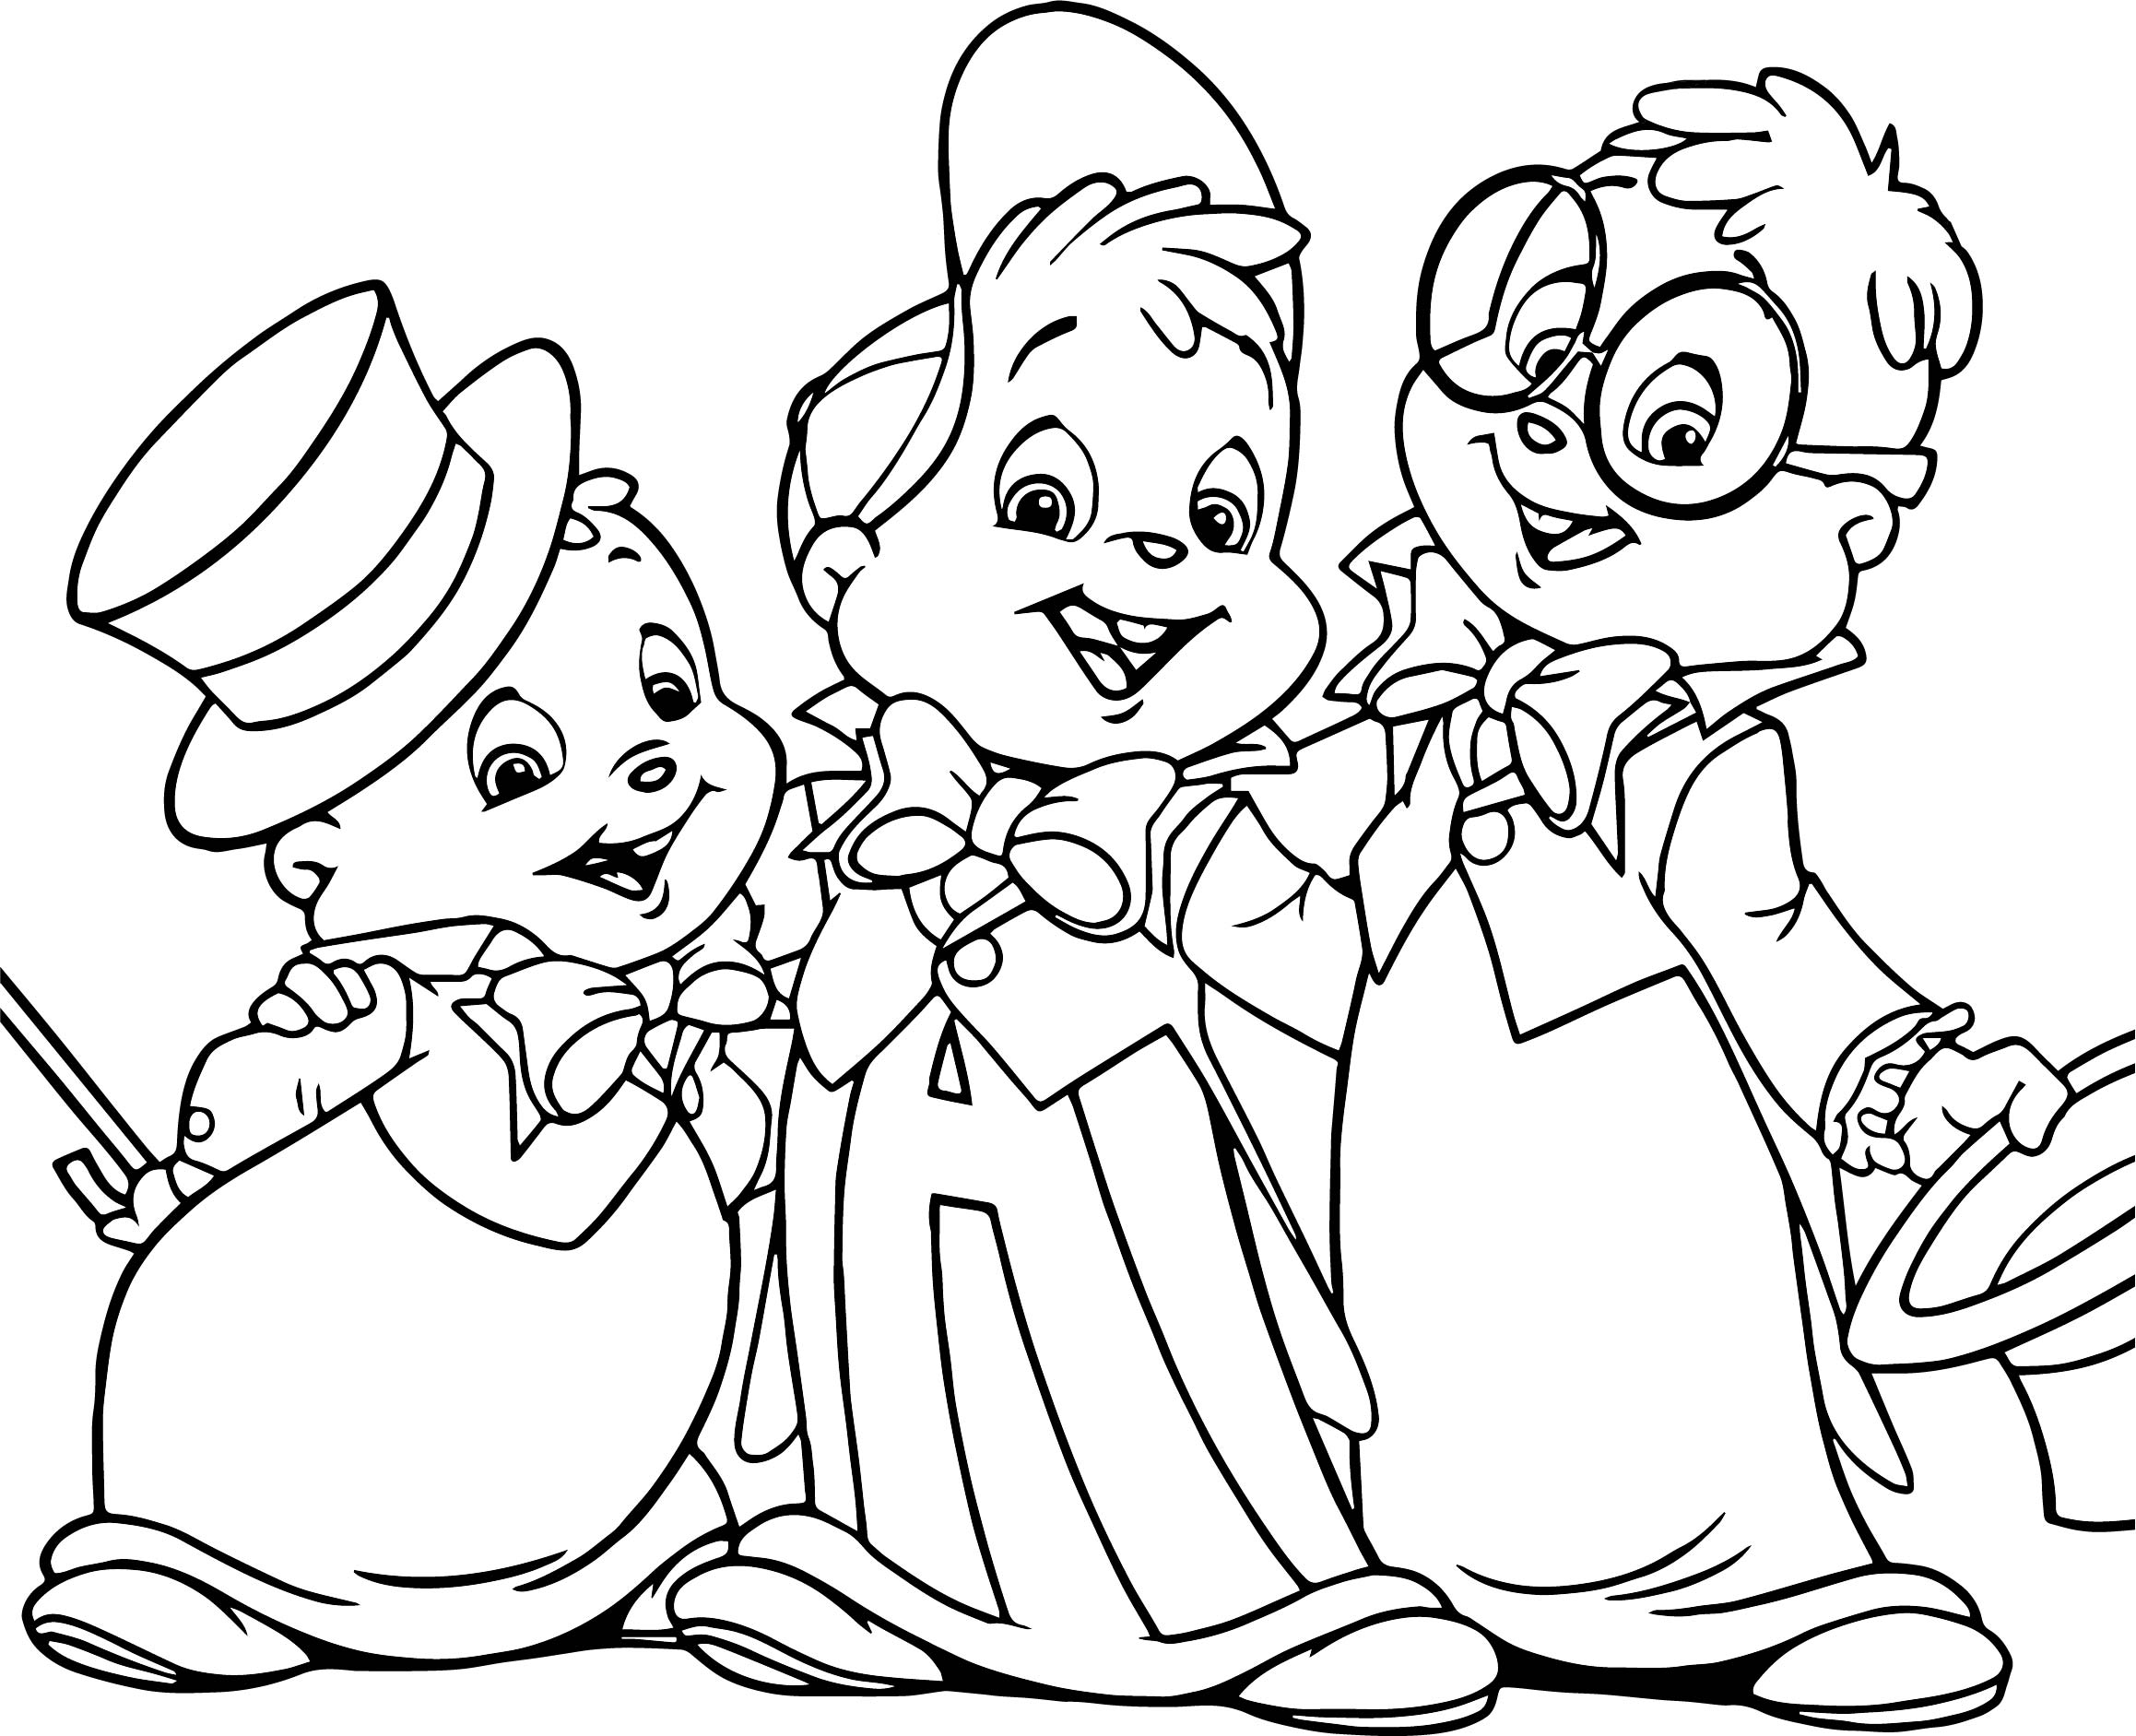 alvin and the chipmunks coloring pages coloring pages alvin and the chipmunks coloring home coloring and the chipmunks pages alvin